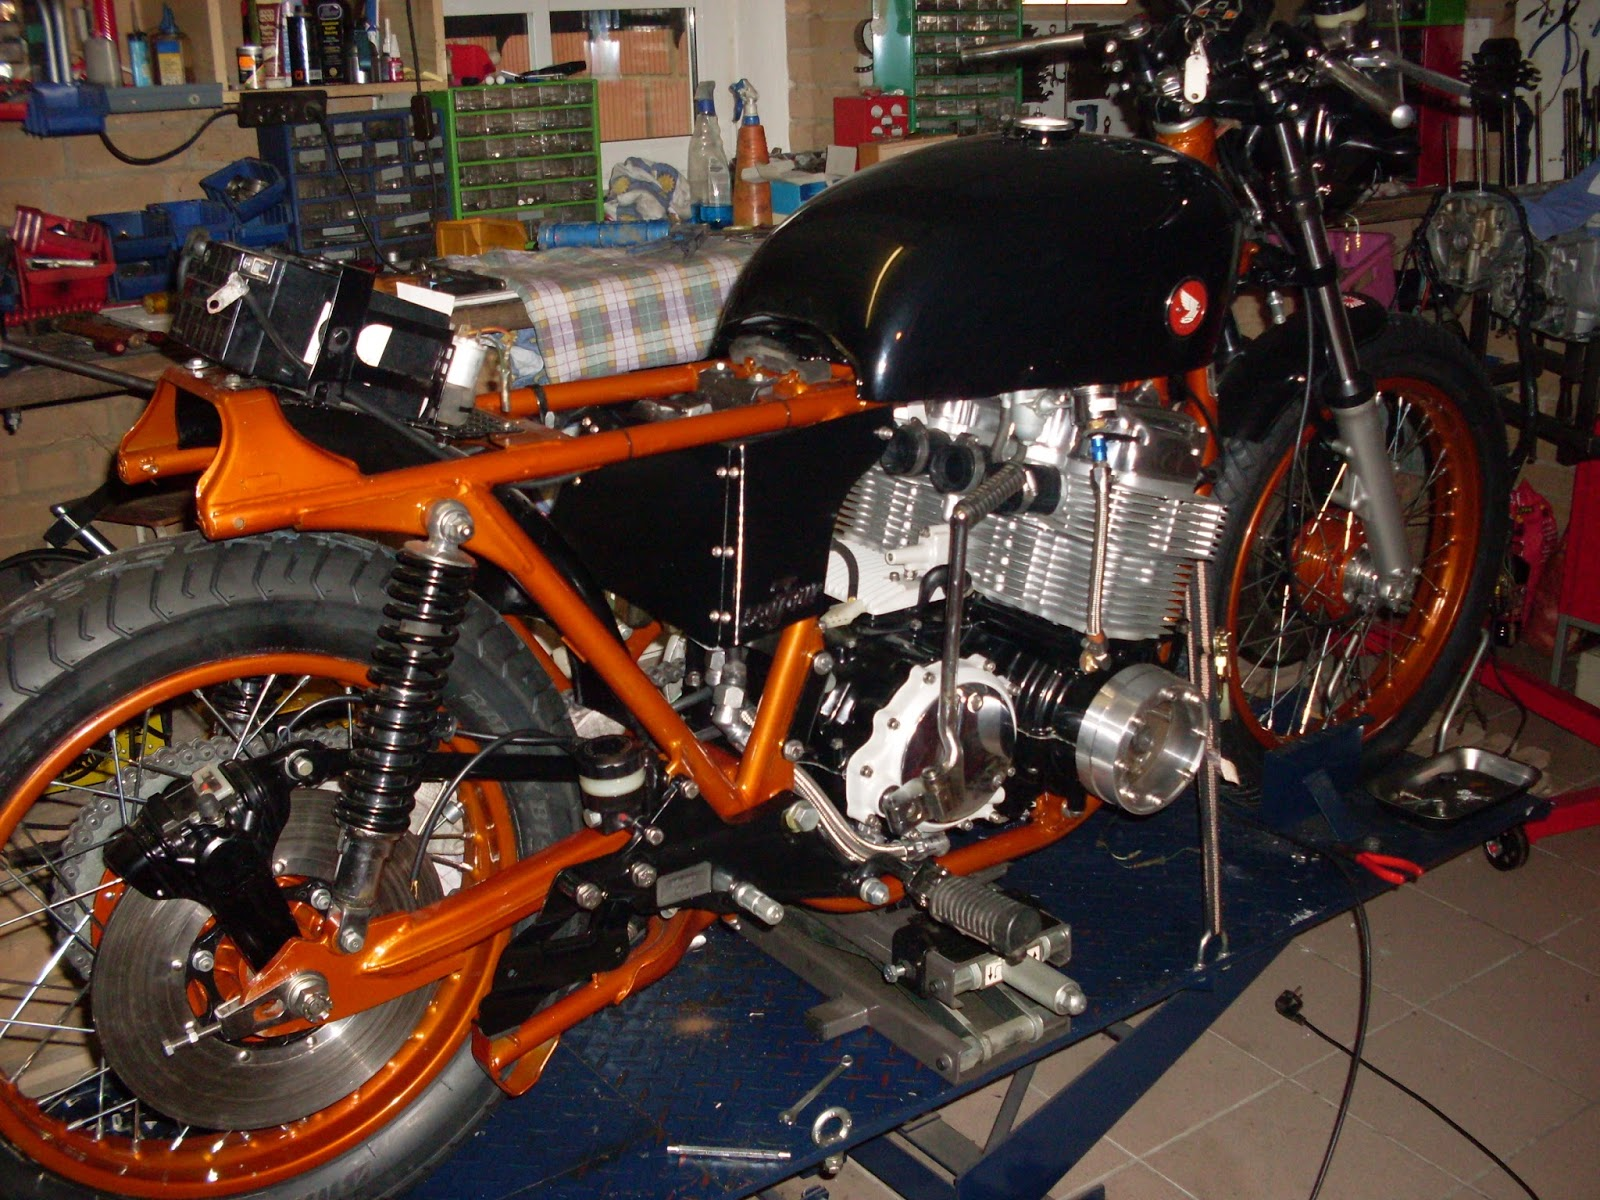 Myhondacb750four Honda Cb 750 Four T9 Cafe Racer